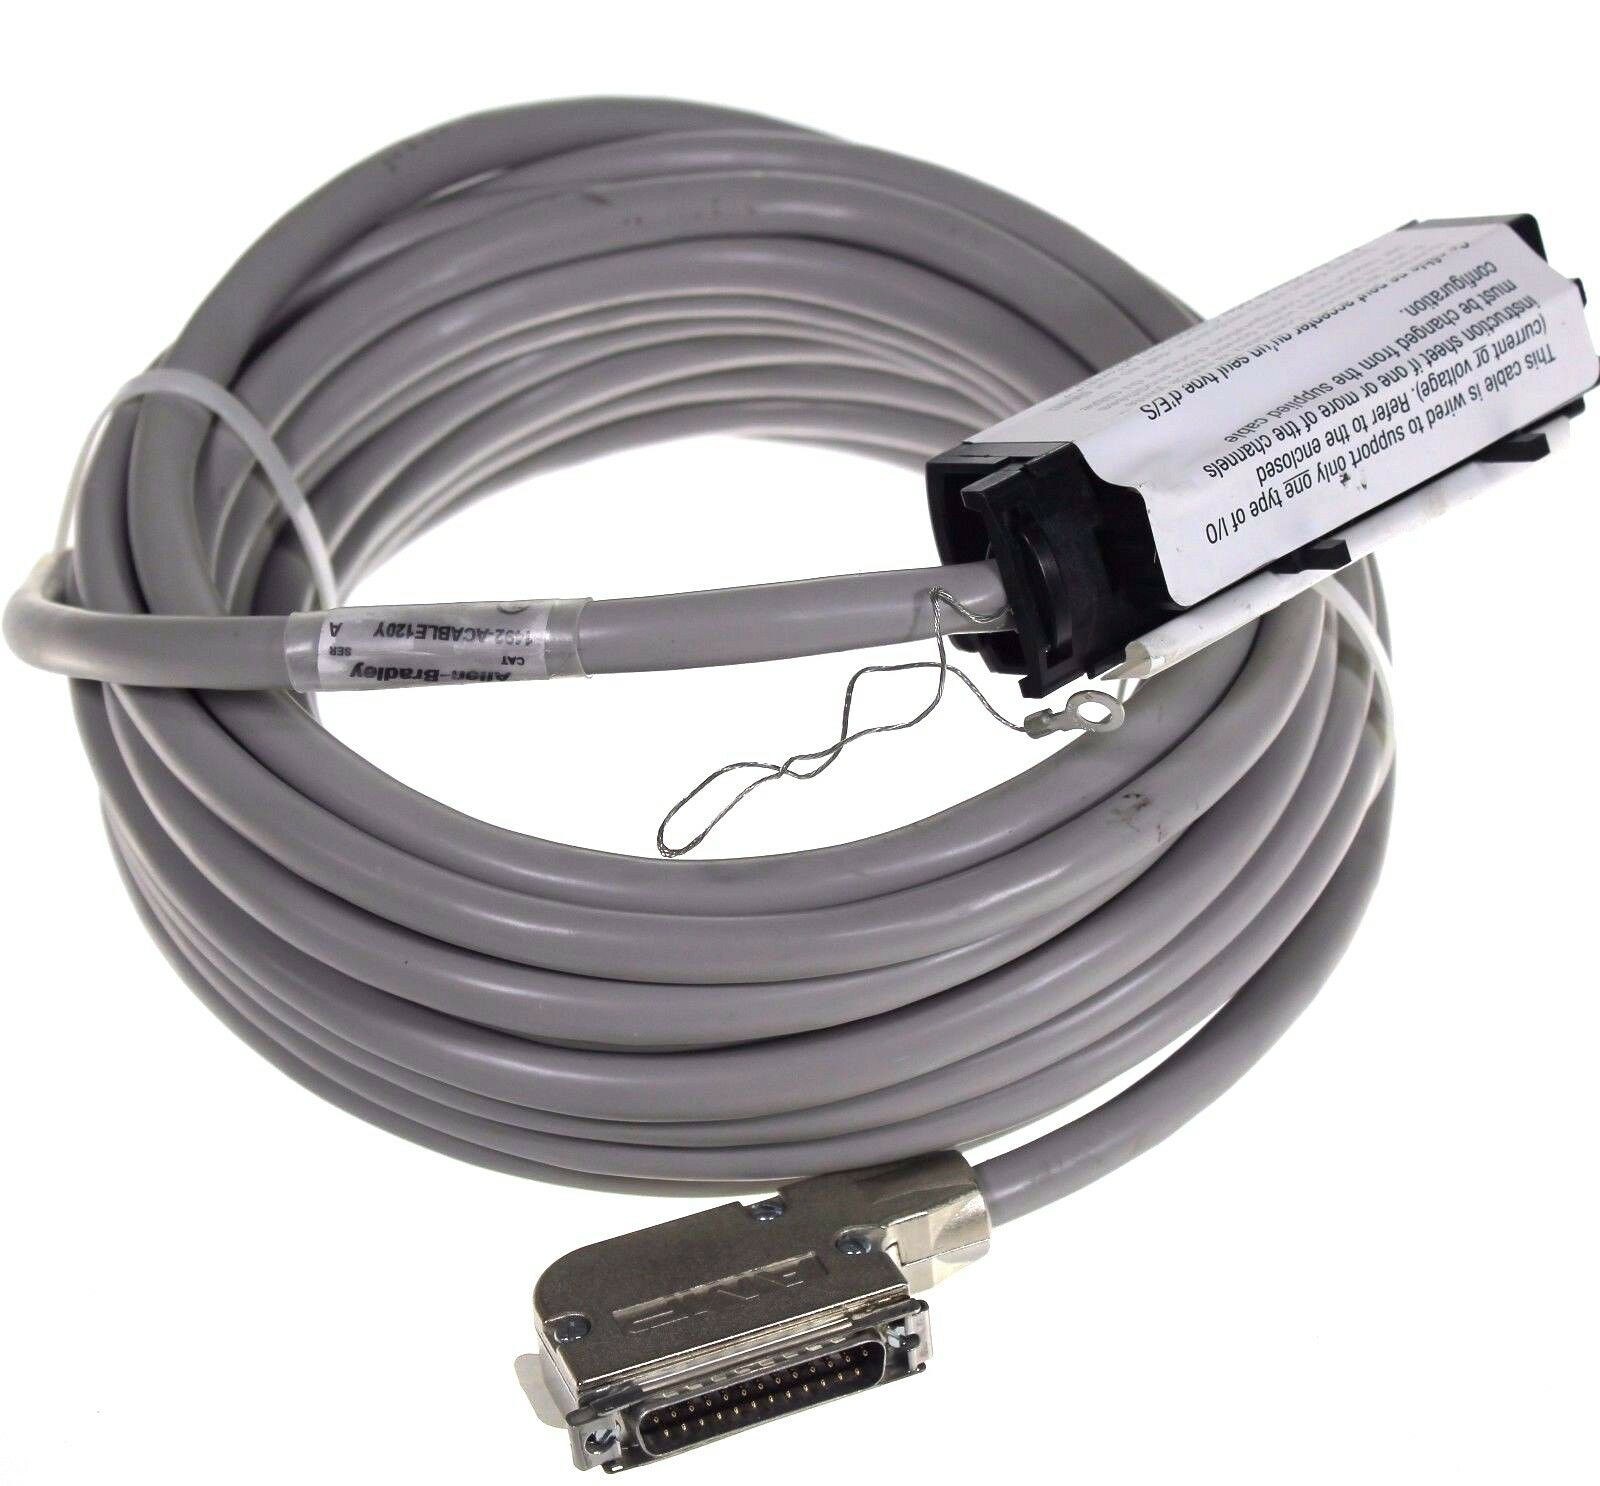 New Allen Bradley 1492-ACABLE120Y Series A ControlLogix Analog Cable